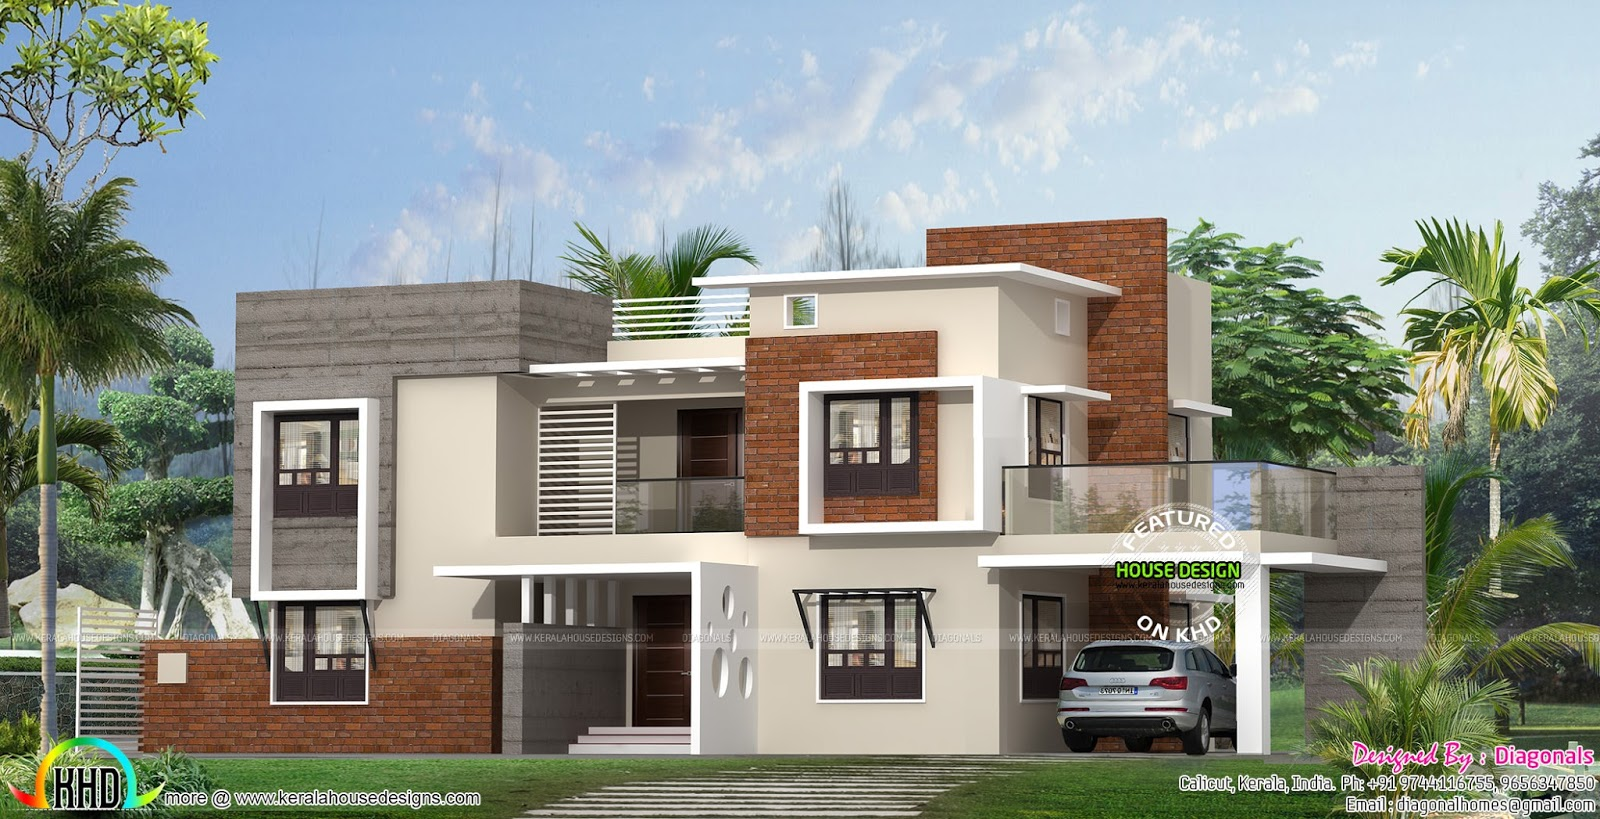 Box model modern flat roof home plan kerala home design for Model house design